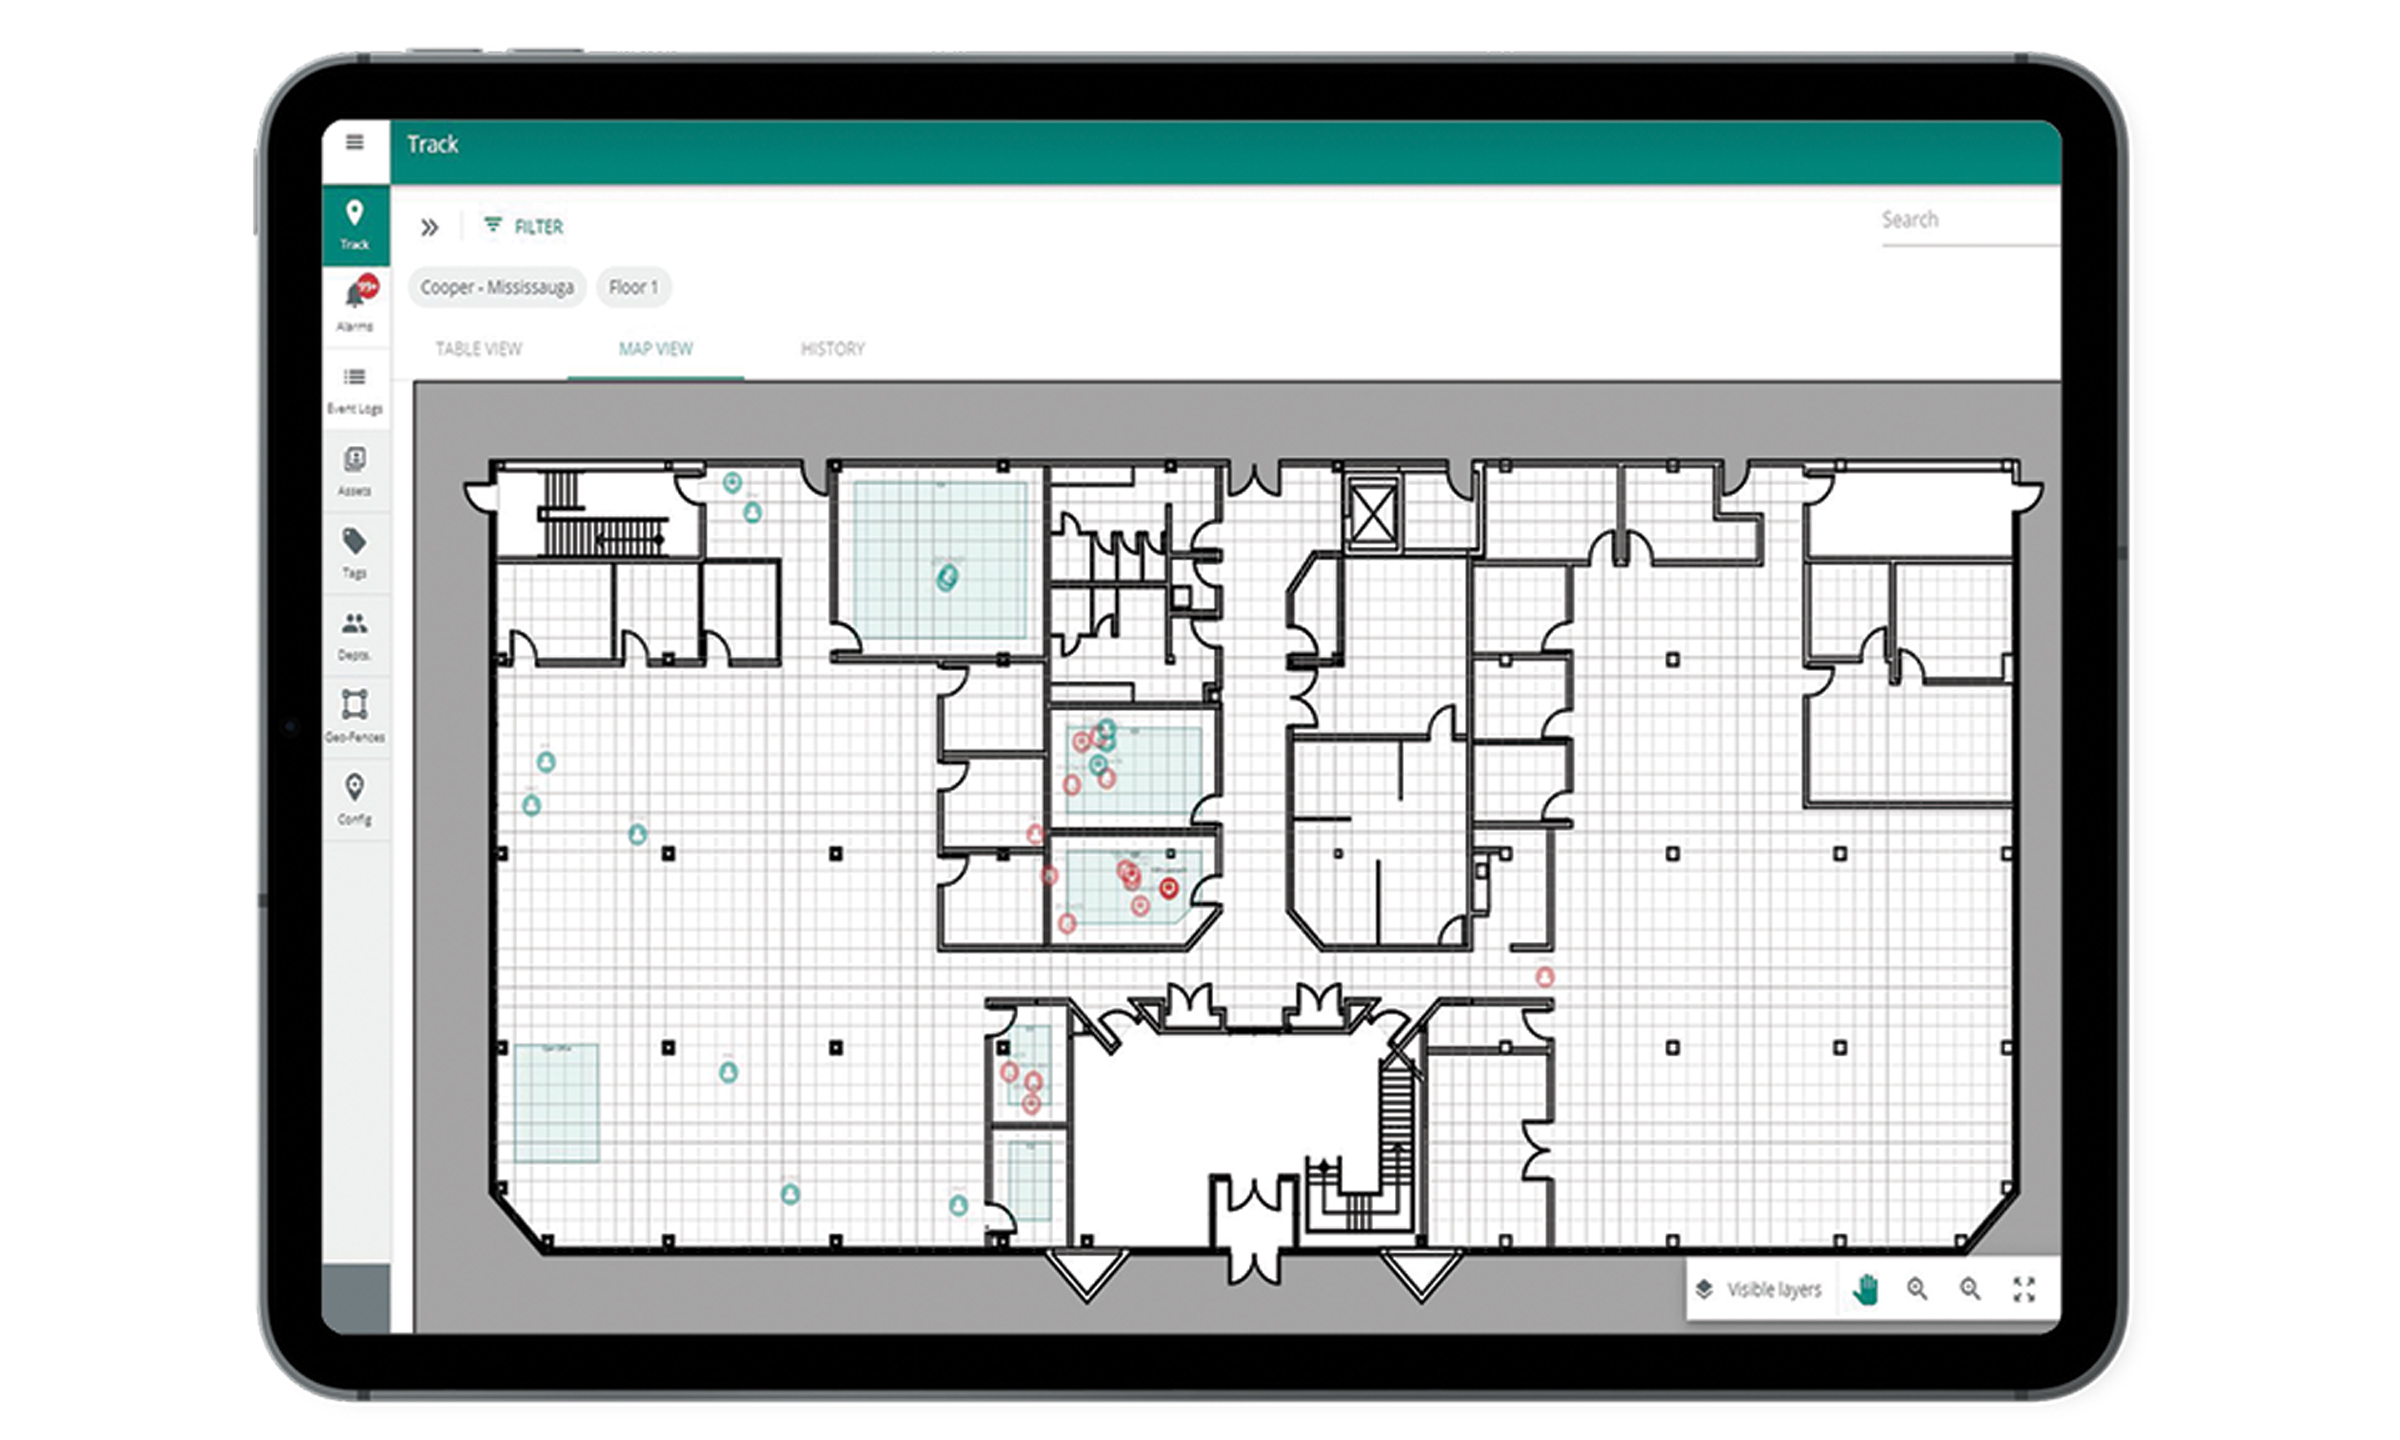 Trellix Locate Floor Map with Real-Time Employee Locations